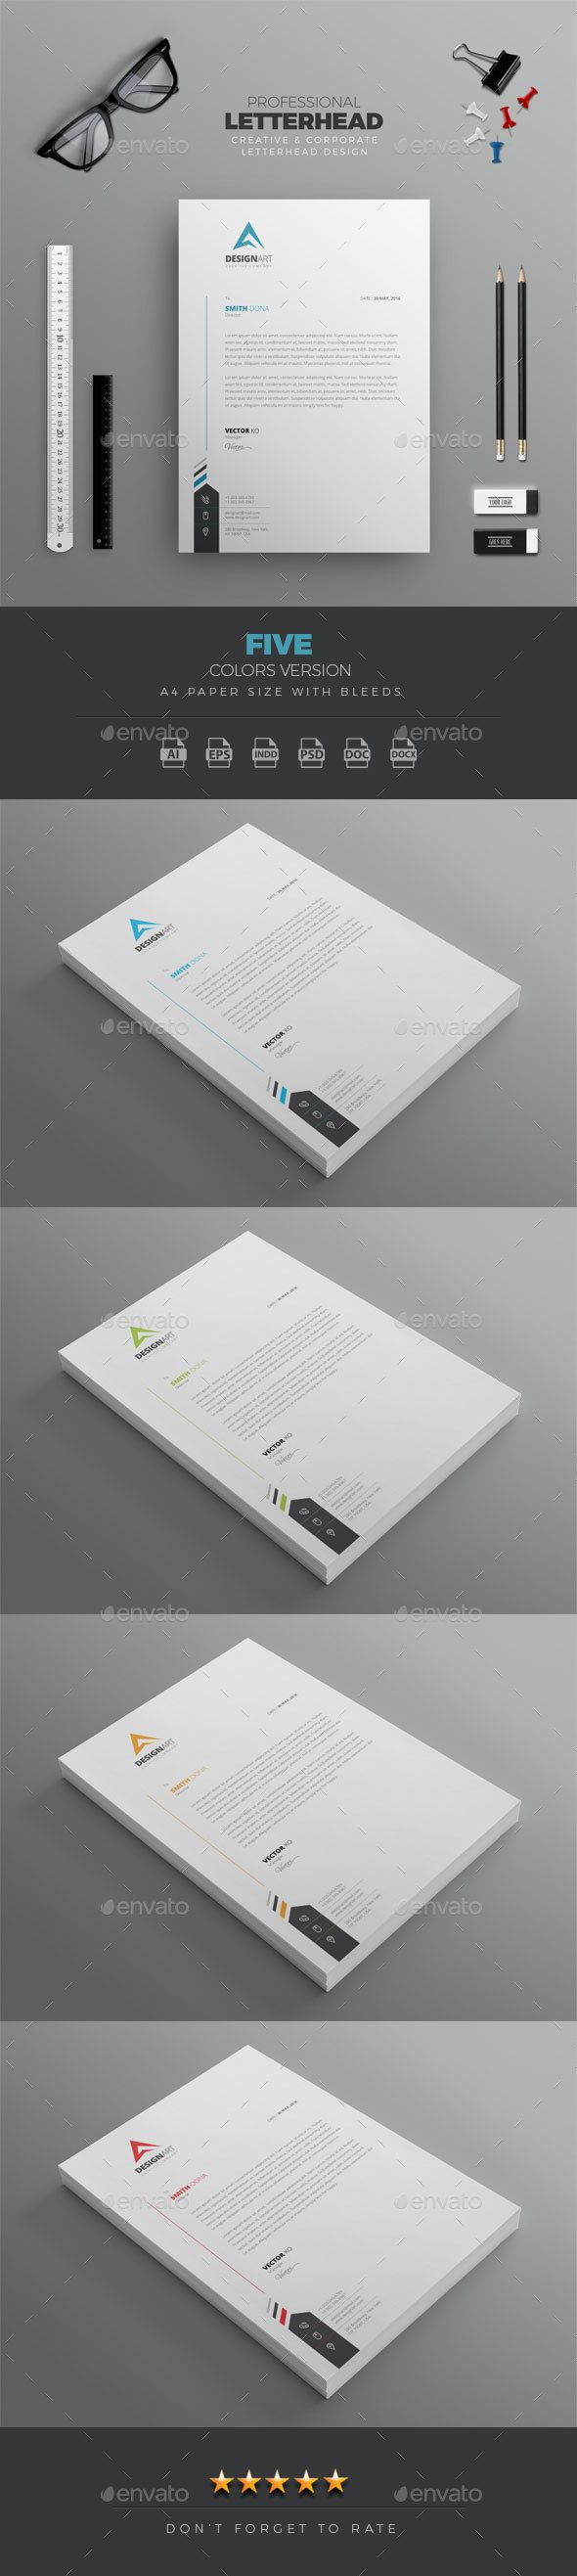 #Professional Letterhead - Stationery Print Templates.Download here: http://graphicriver.net/item/professional-letterhead/16337031?ref=arroganttype